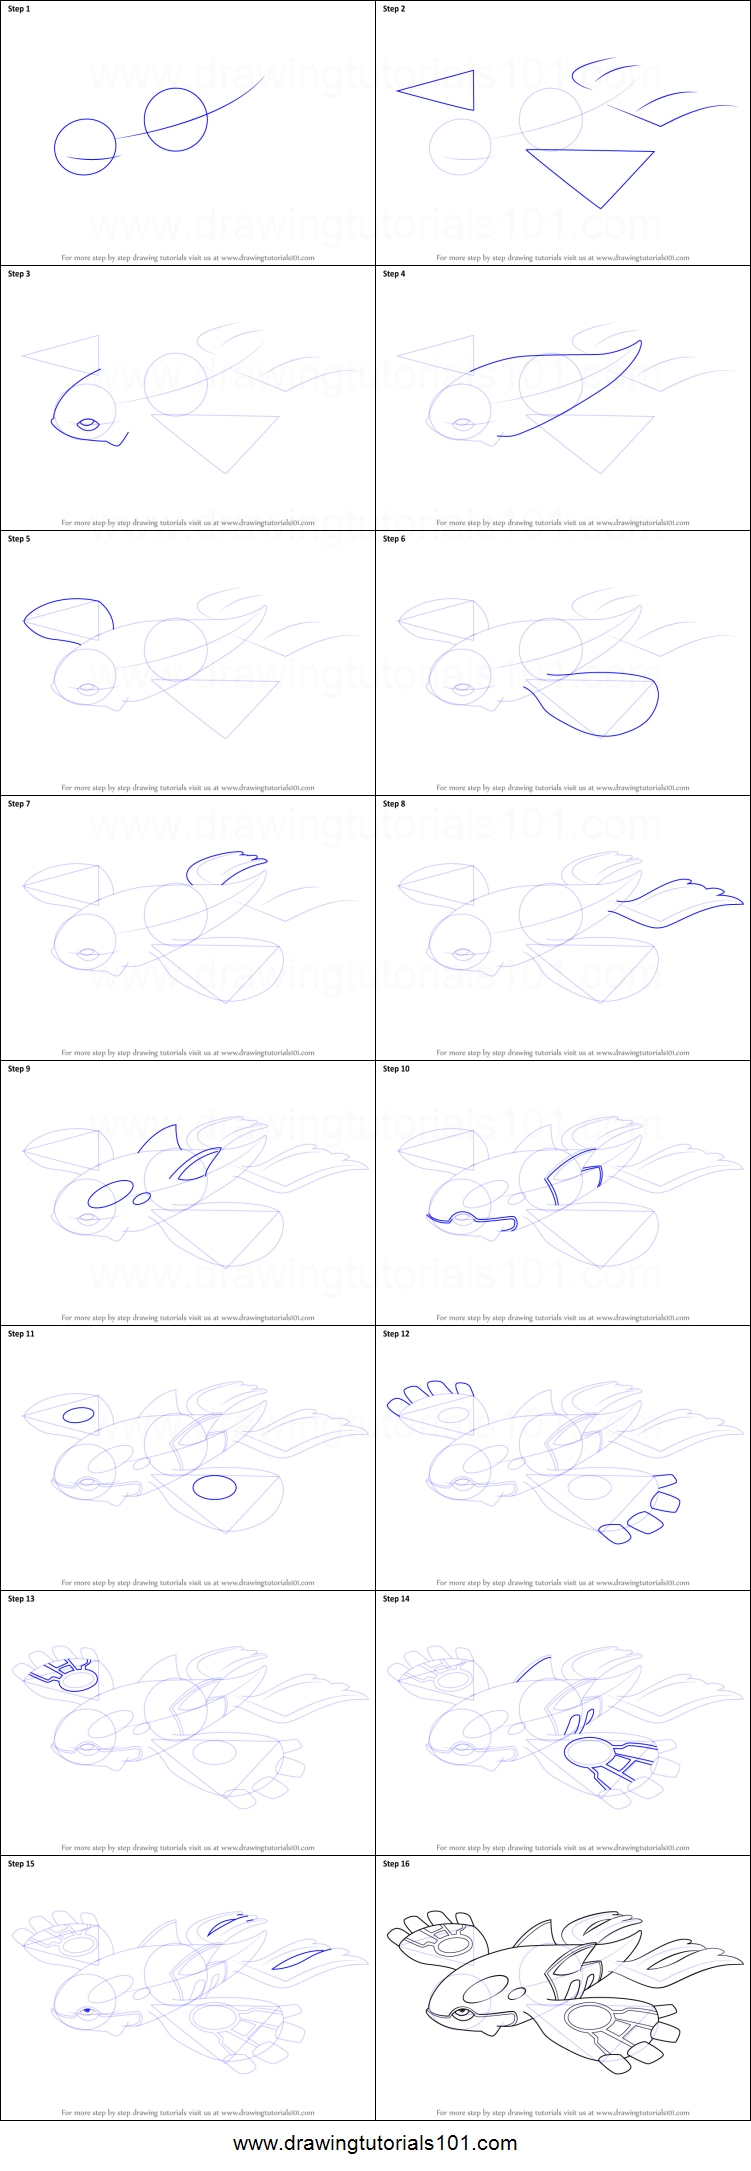 Uncategorized How To Draw Kyogre how to draw kyogre from pokemon printable step by drawing sheet drawingtutorials101 com